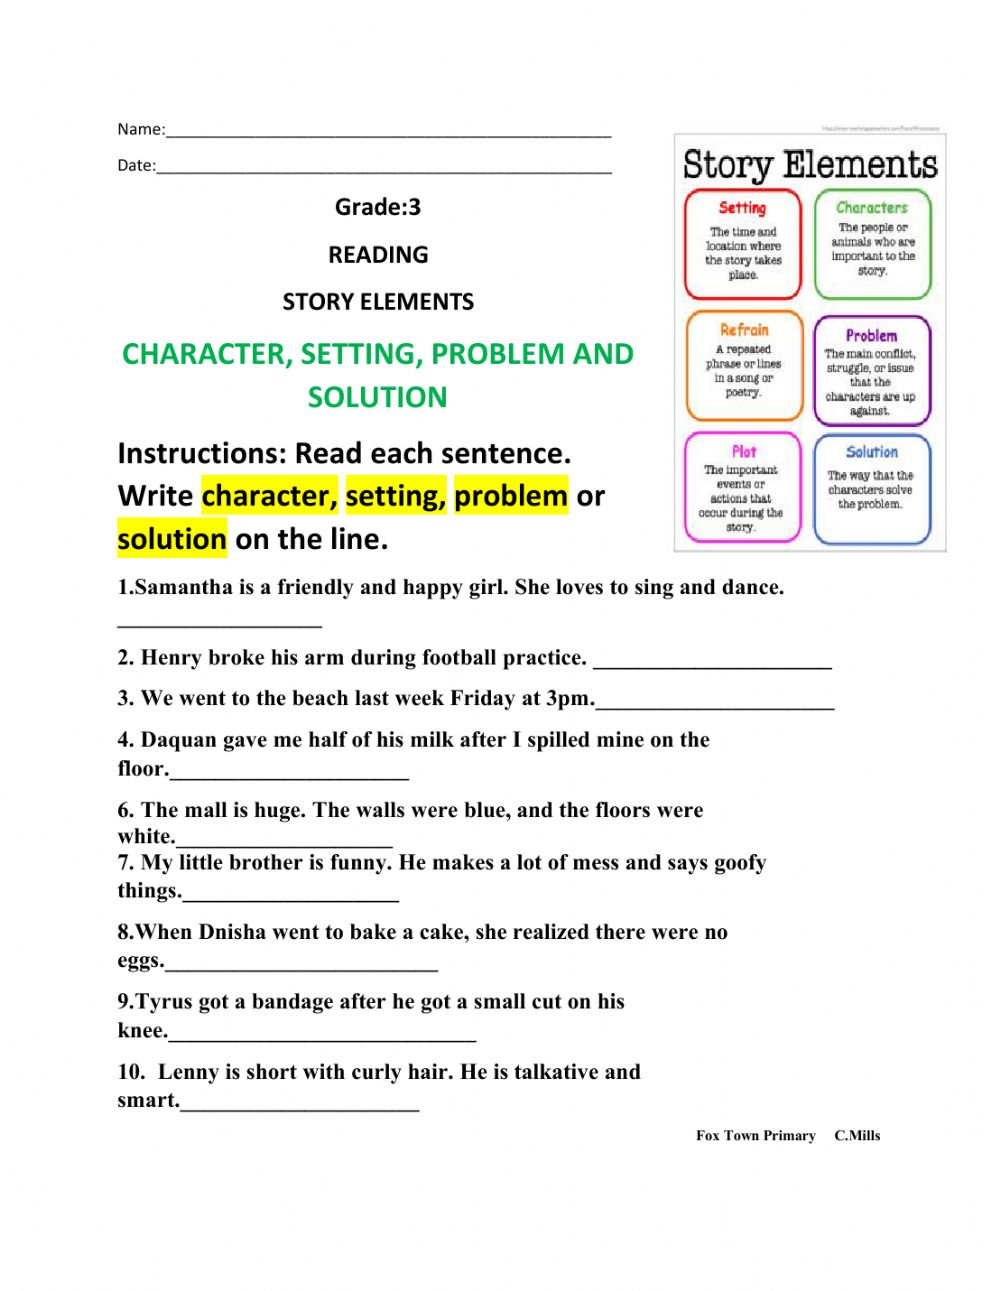 hight resolution of Story Elements online activity for 3